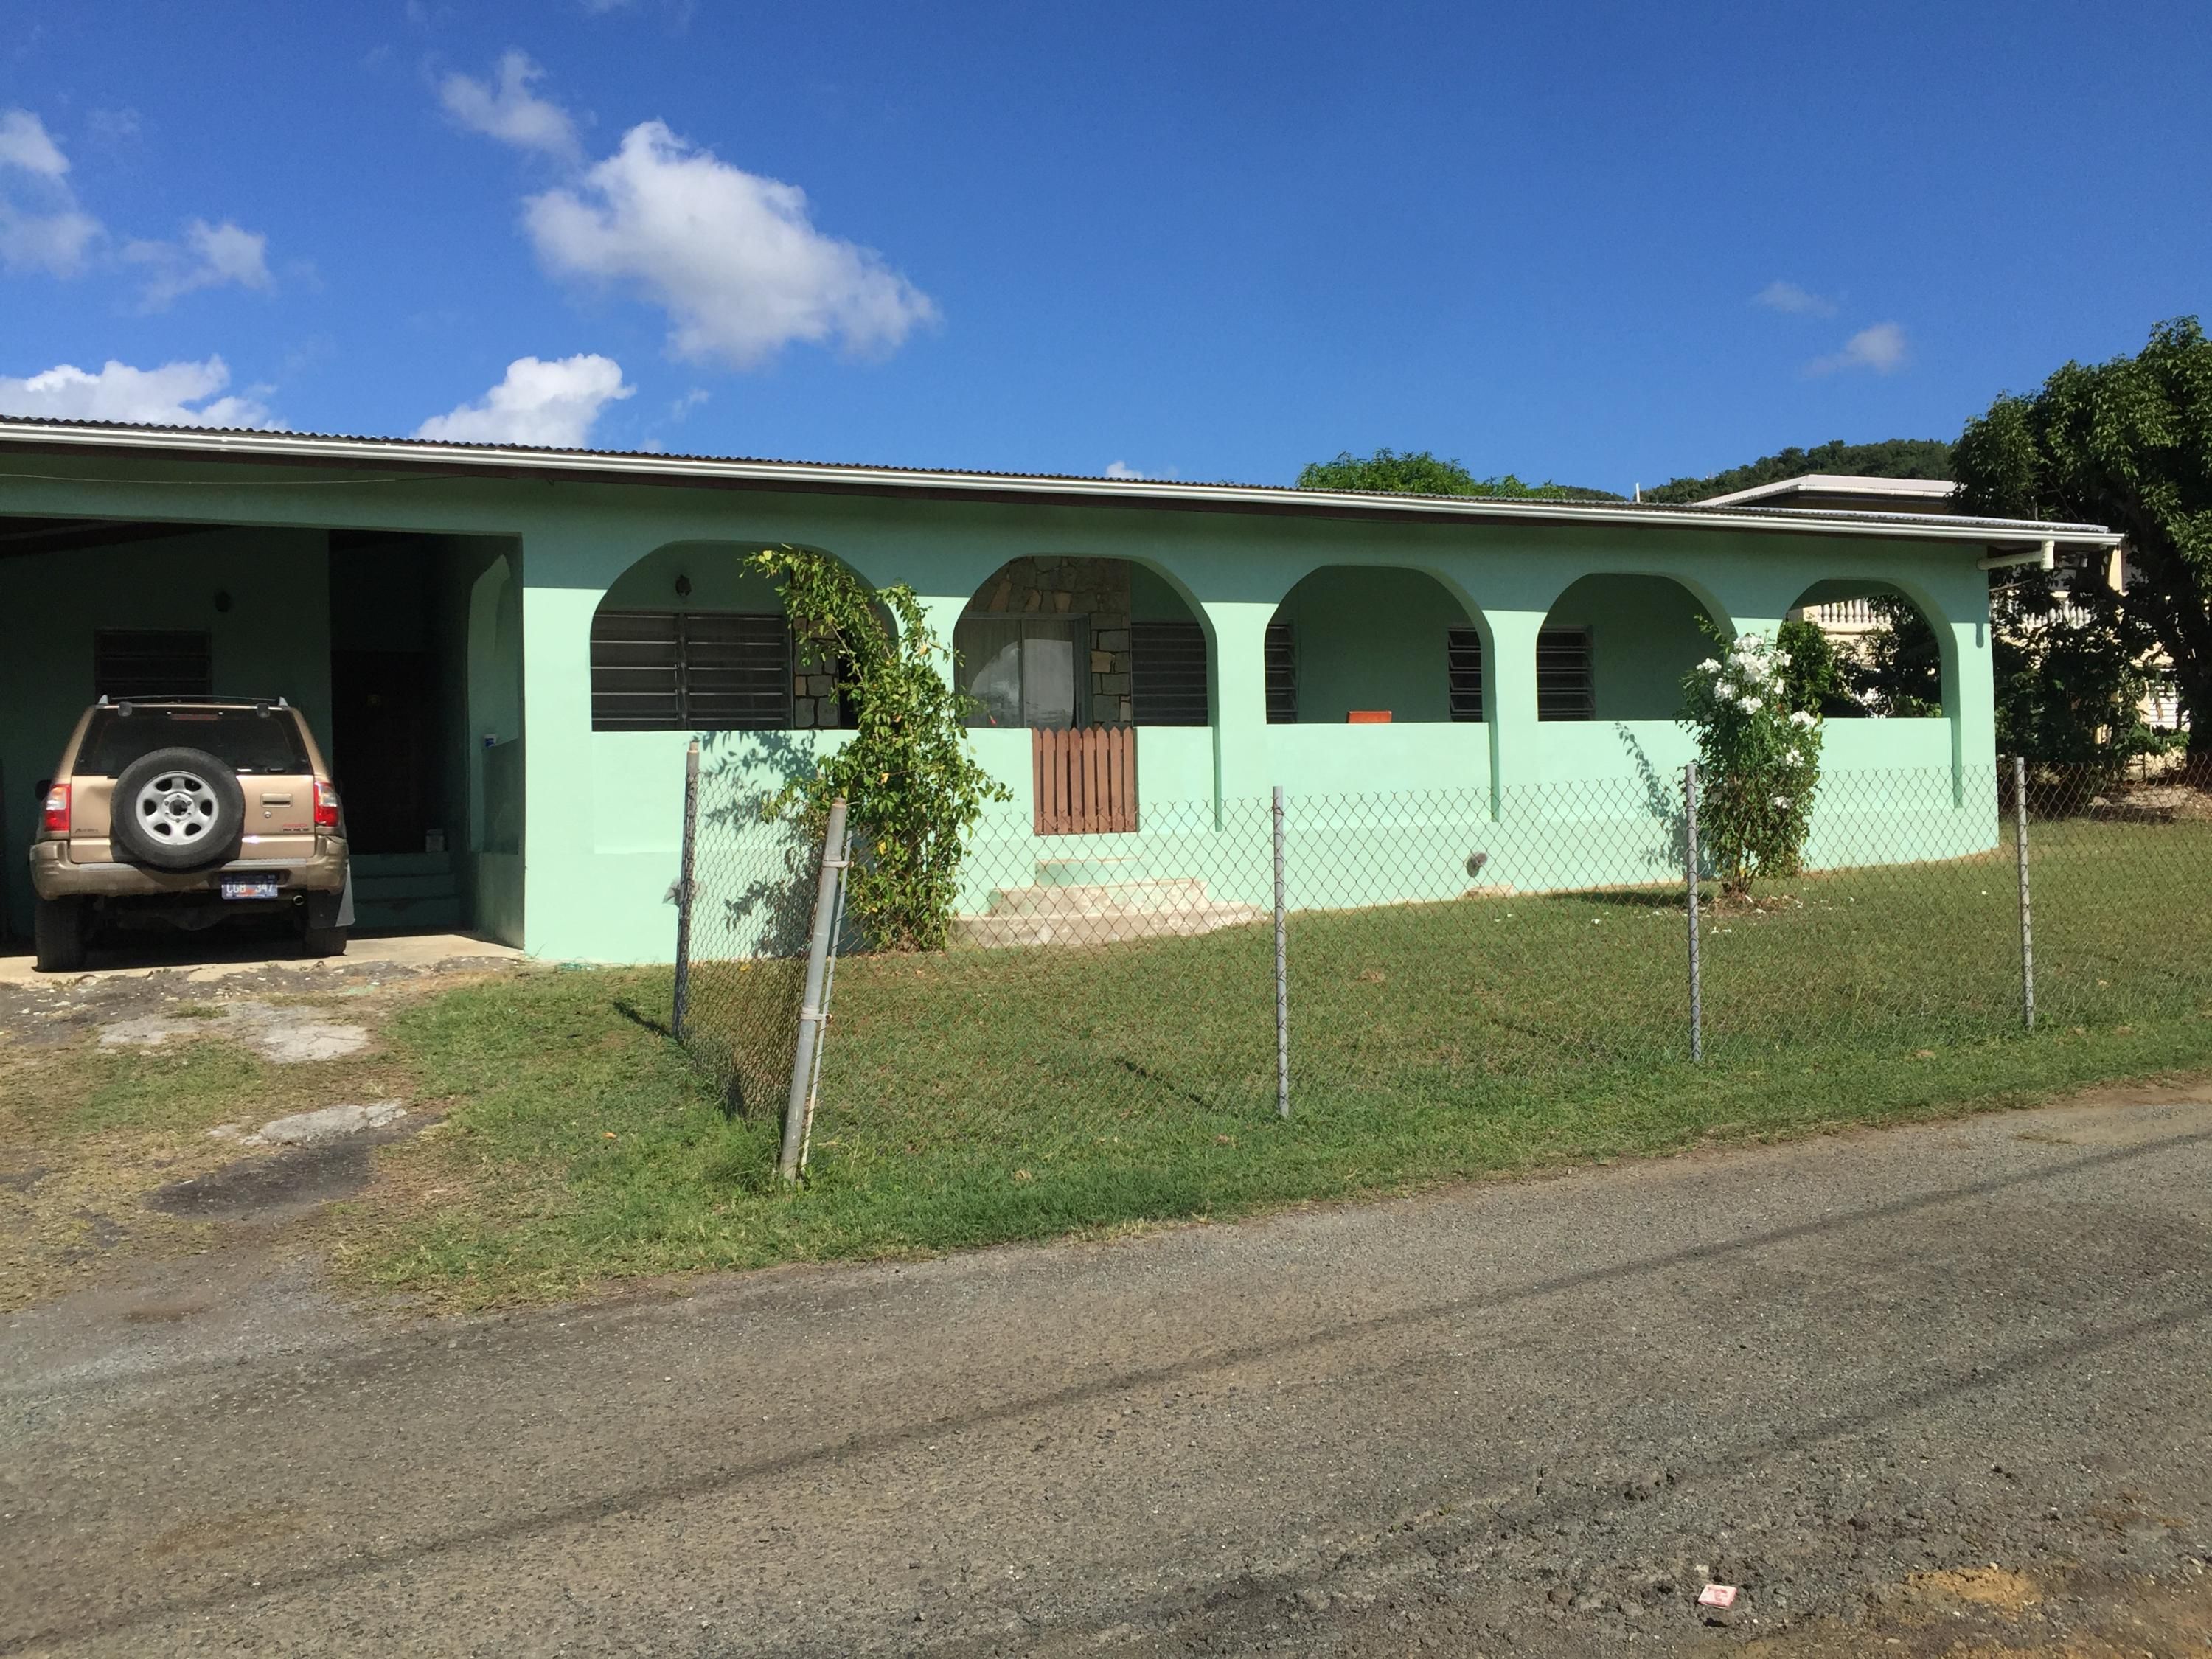 Single Family Home for Sale at 243 Hermon Hill CO 243 Hermon Hill CO St Croix, Virgin Islands 00820 United States Virgin Islands